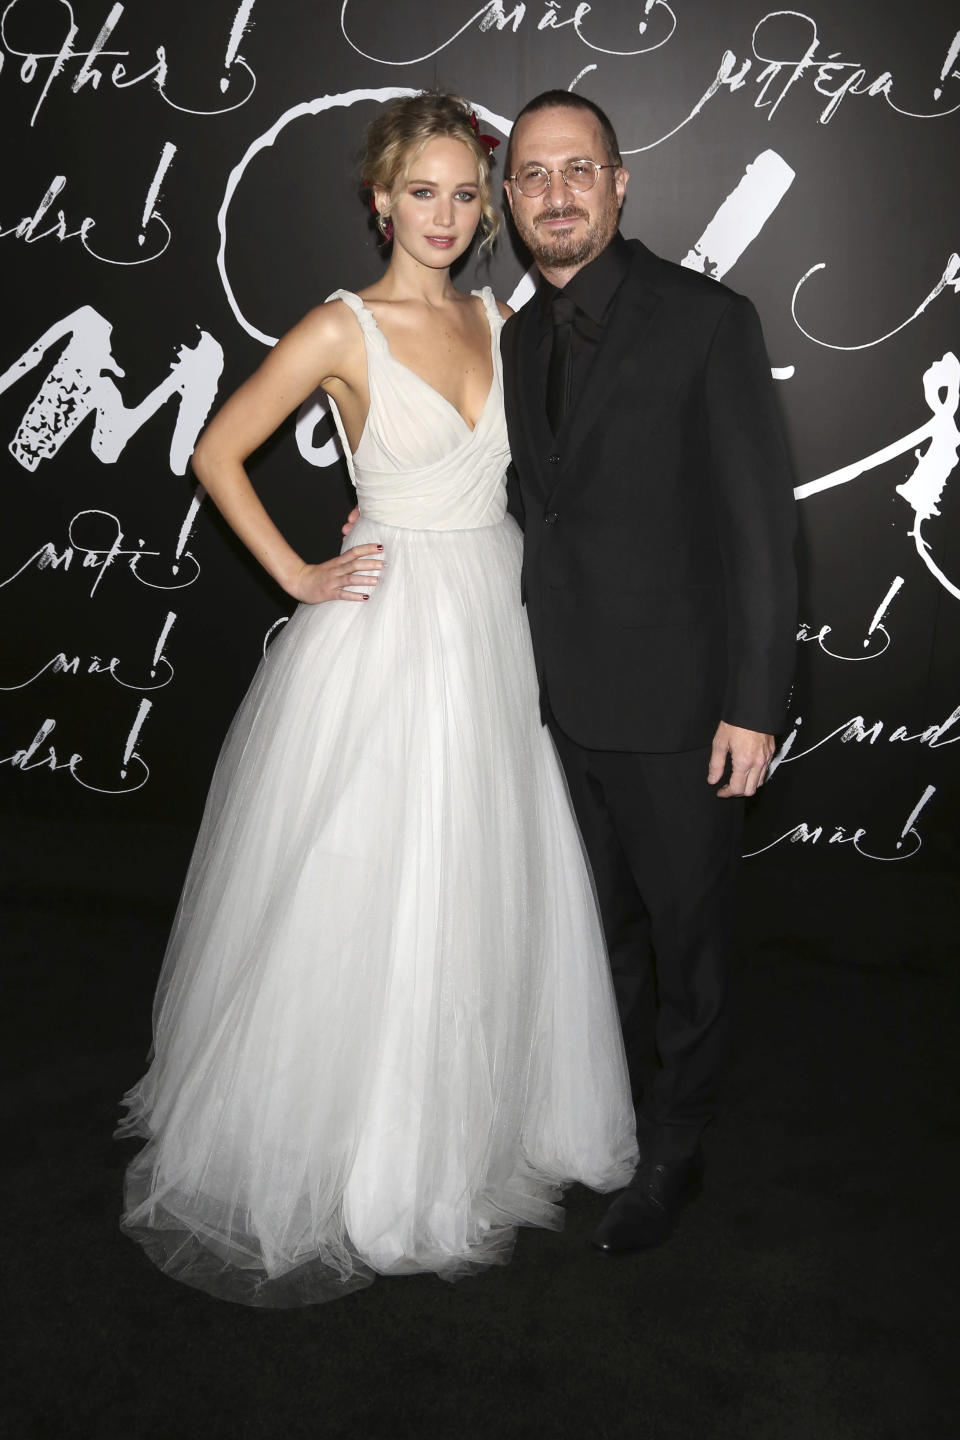 Jennifer Lawrence and boyfriend Darren Aronofsky pose together at the NY premiere of 'mother!'.